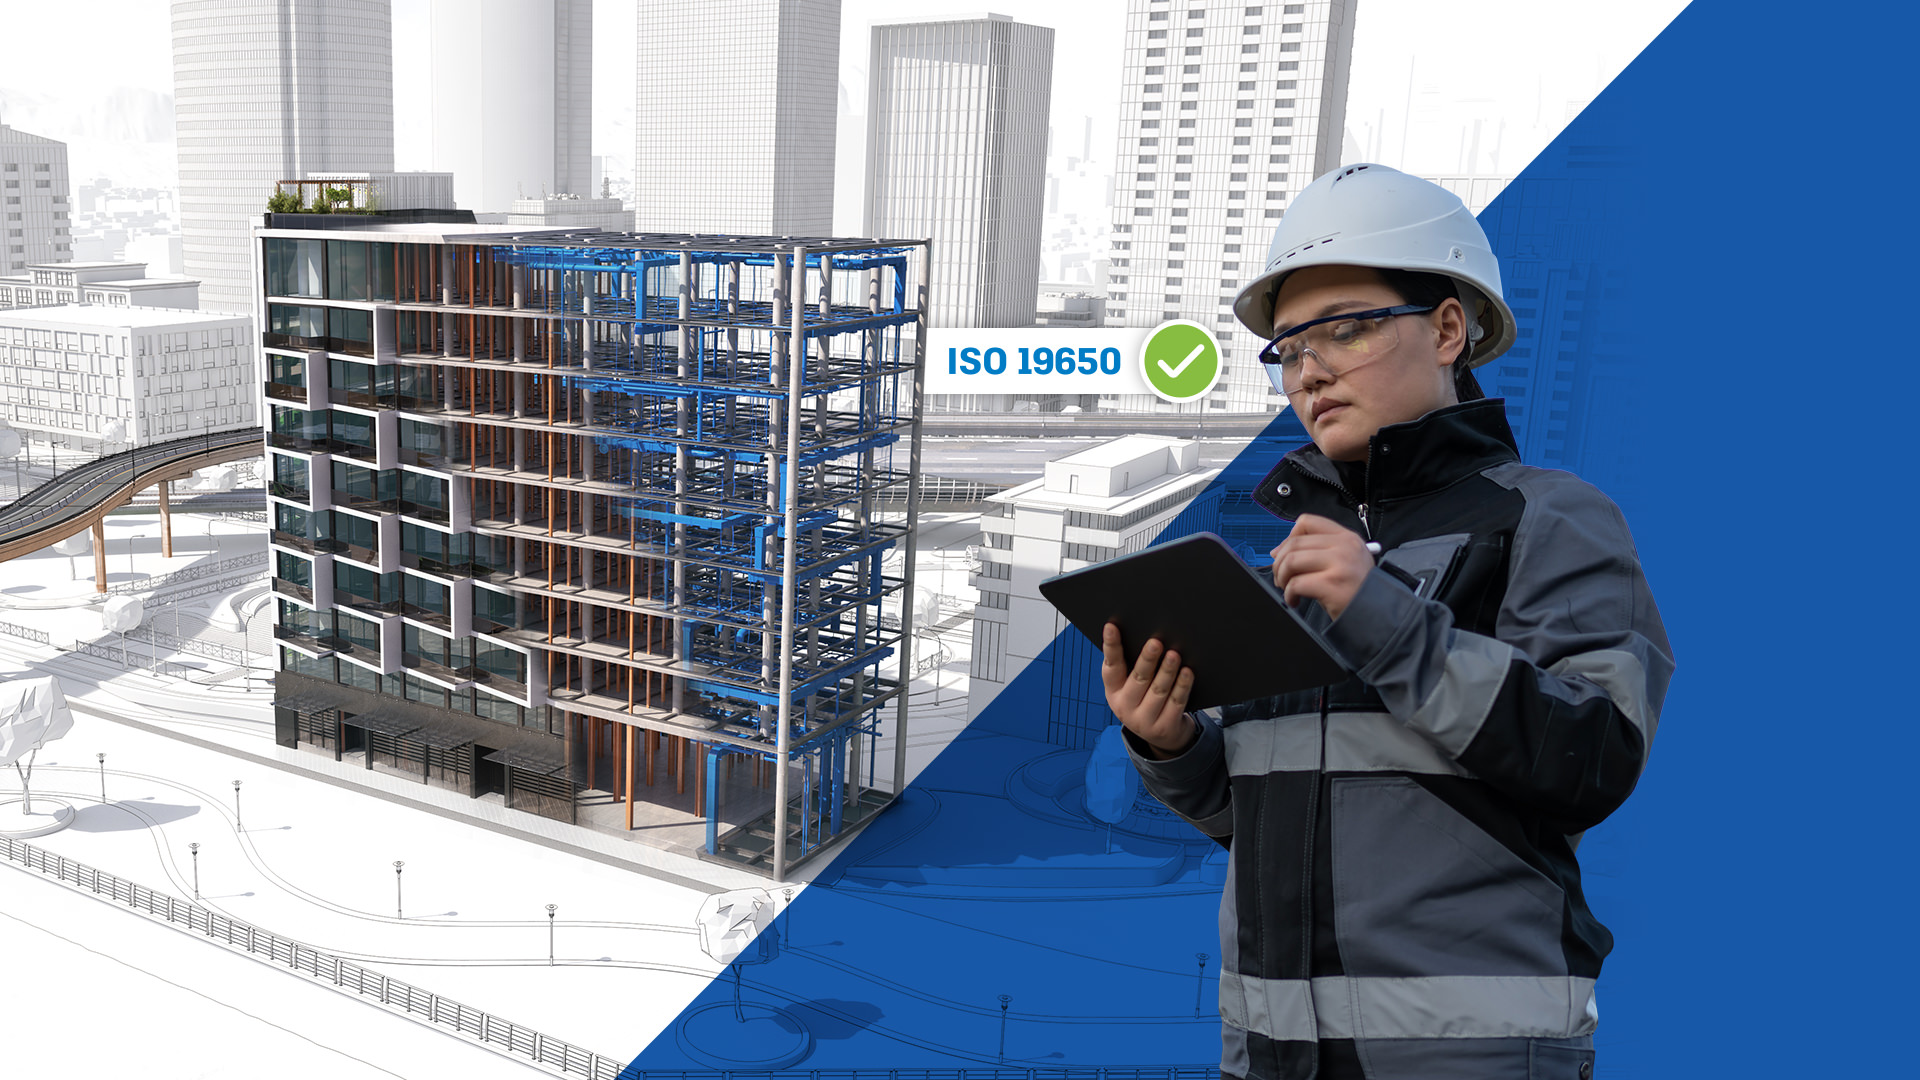 Autodesk Construction Cloud can help customers comply with ISO 19650